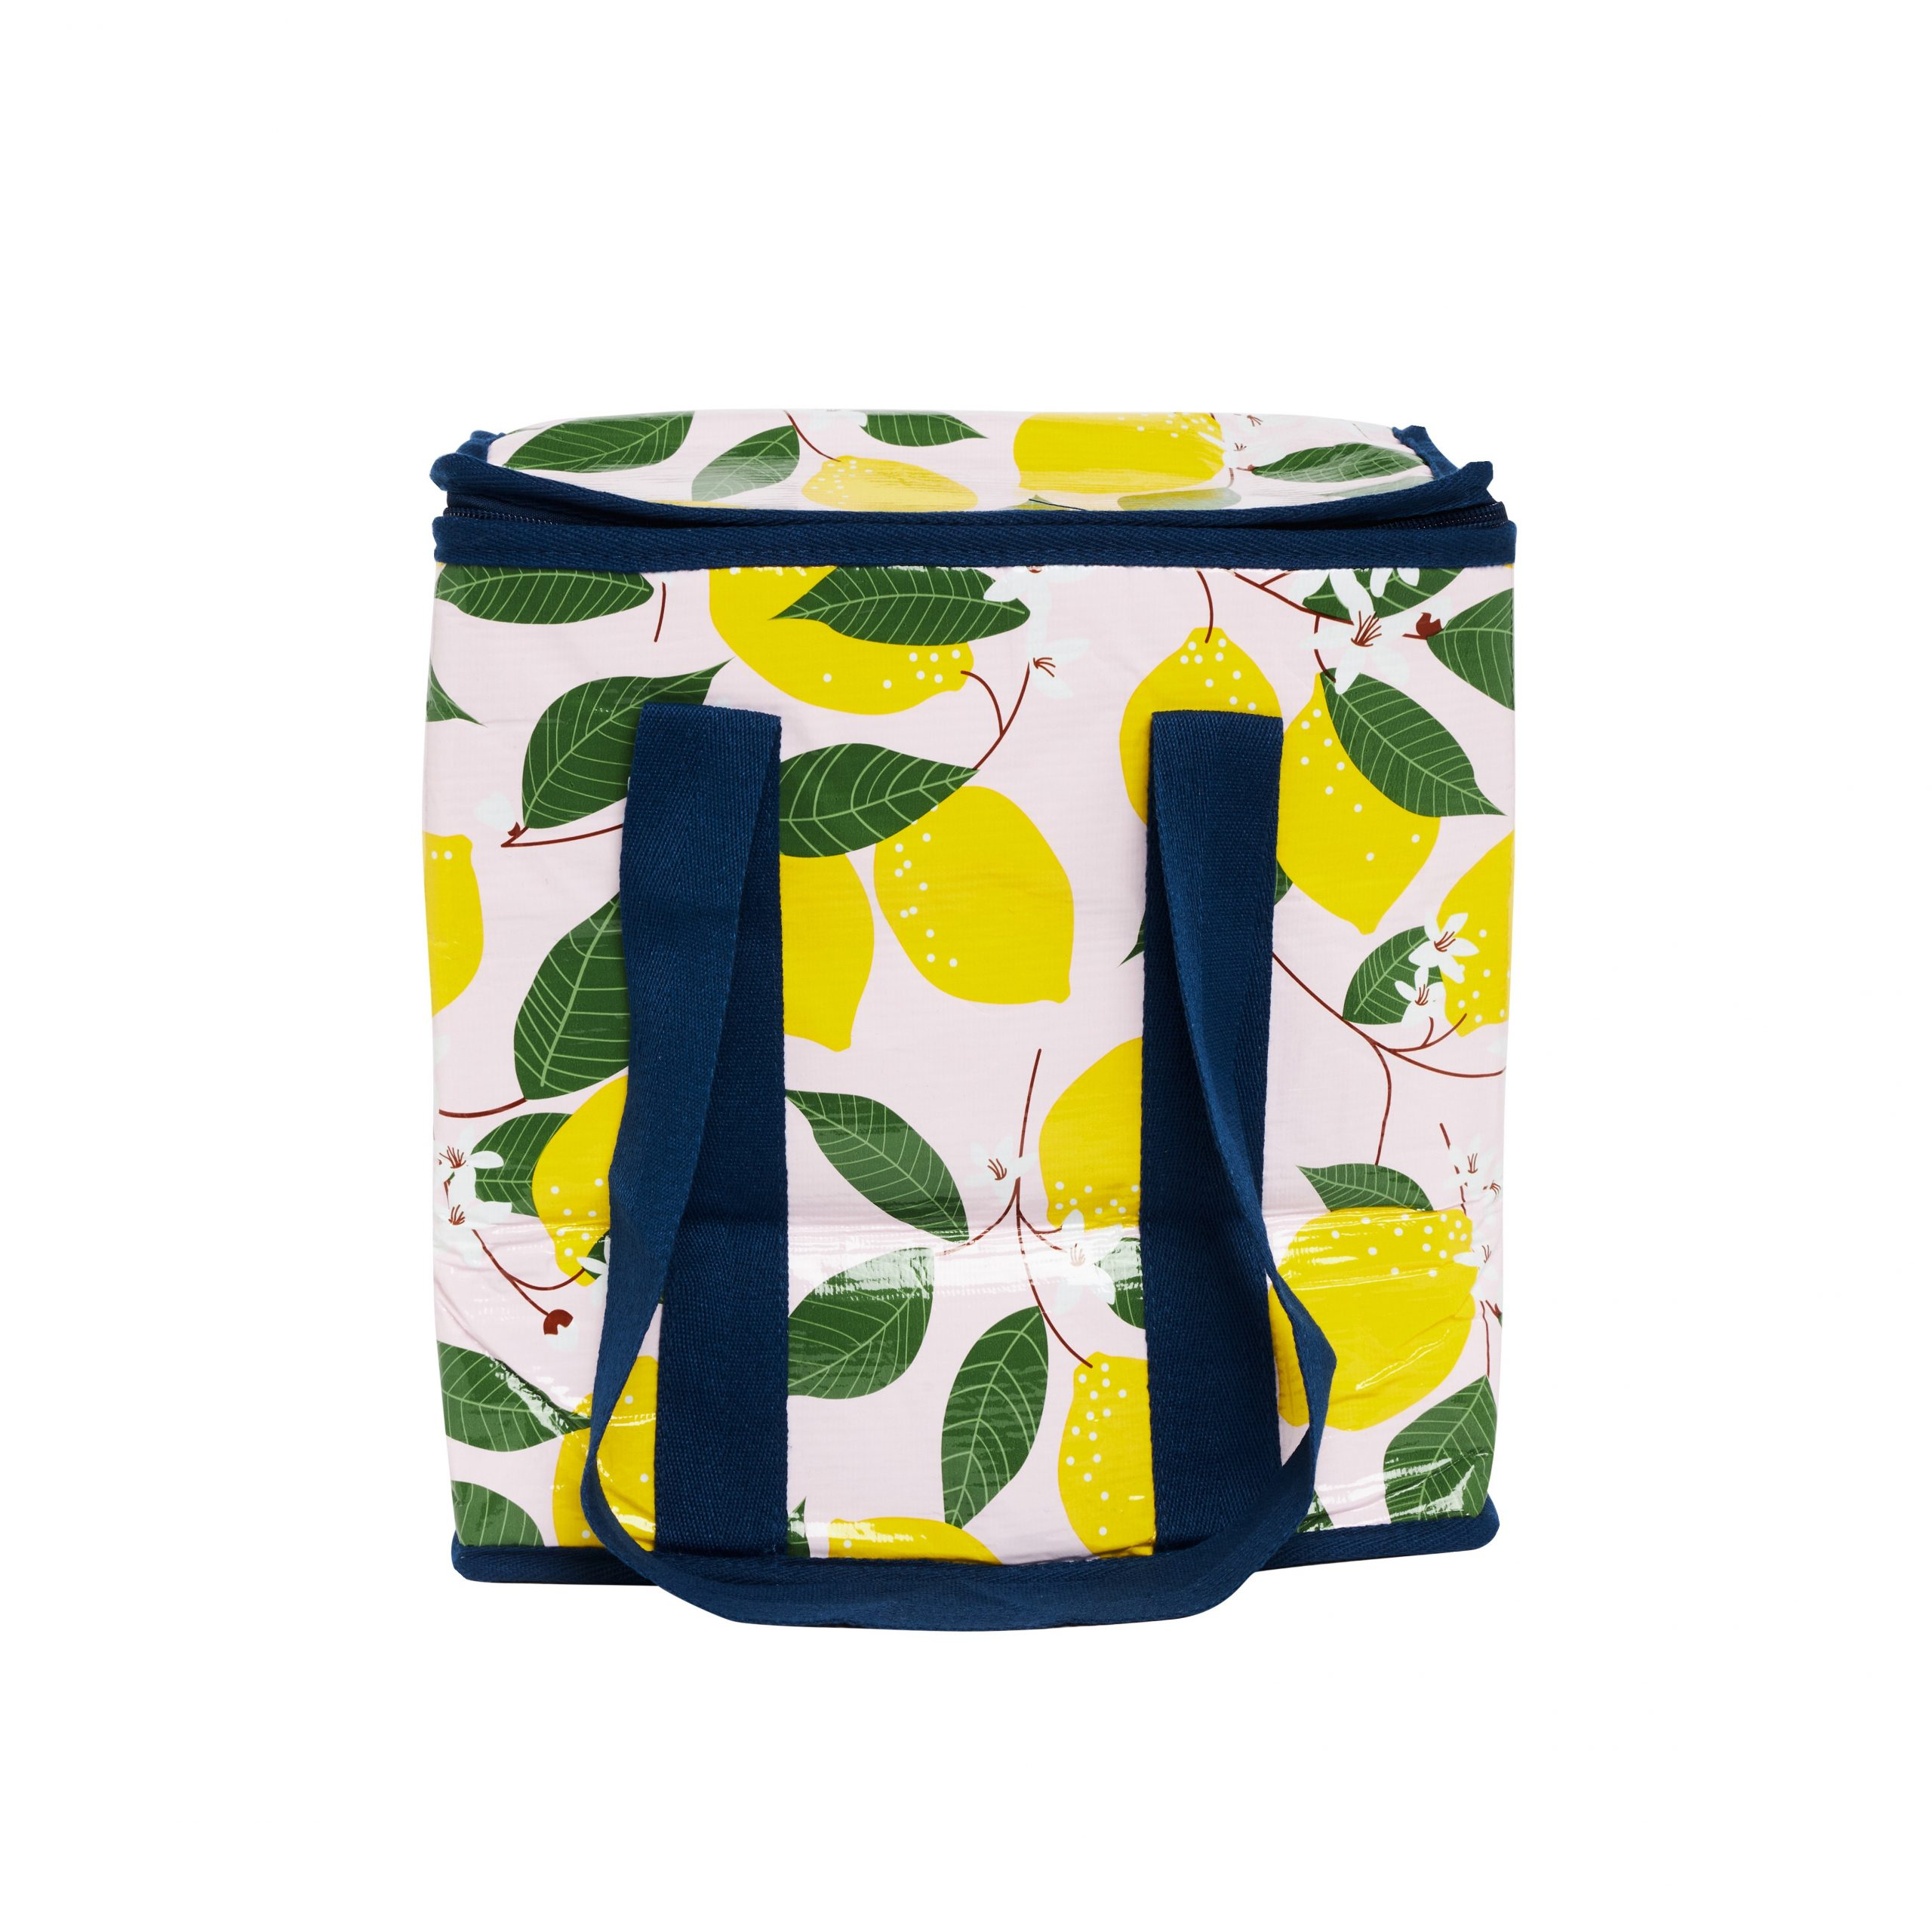 Project Ten Spring Lemons insulated